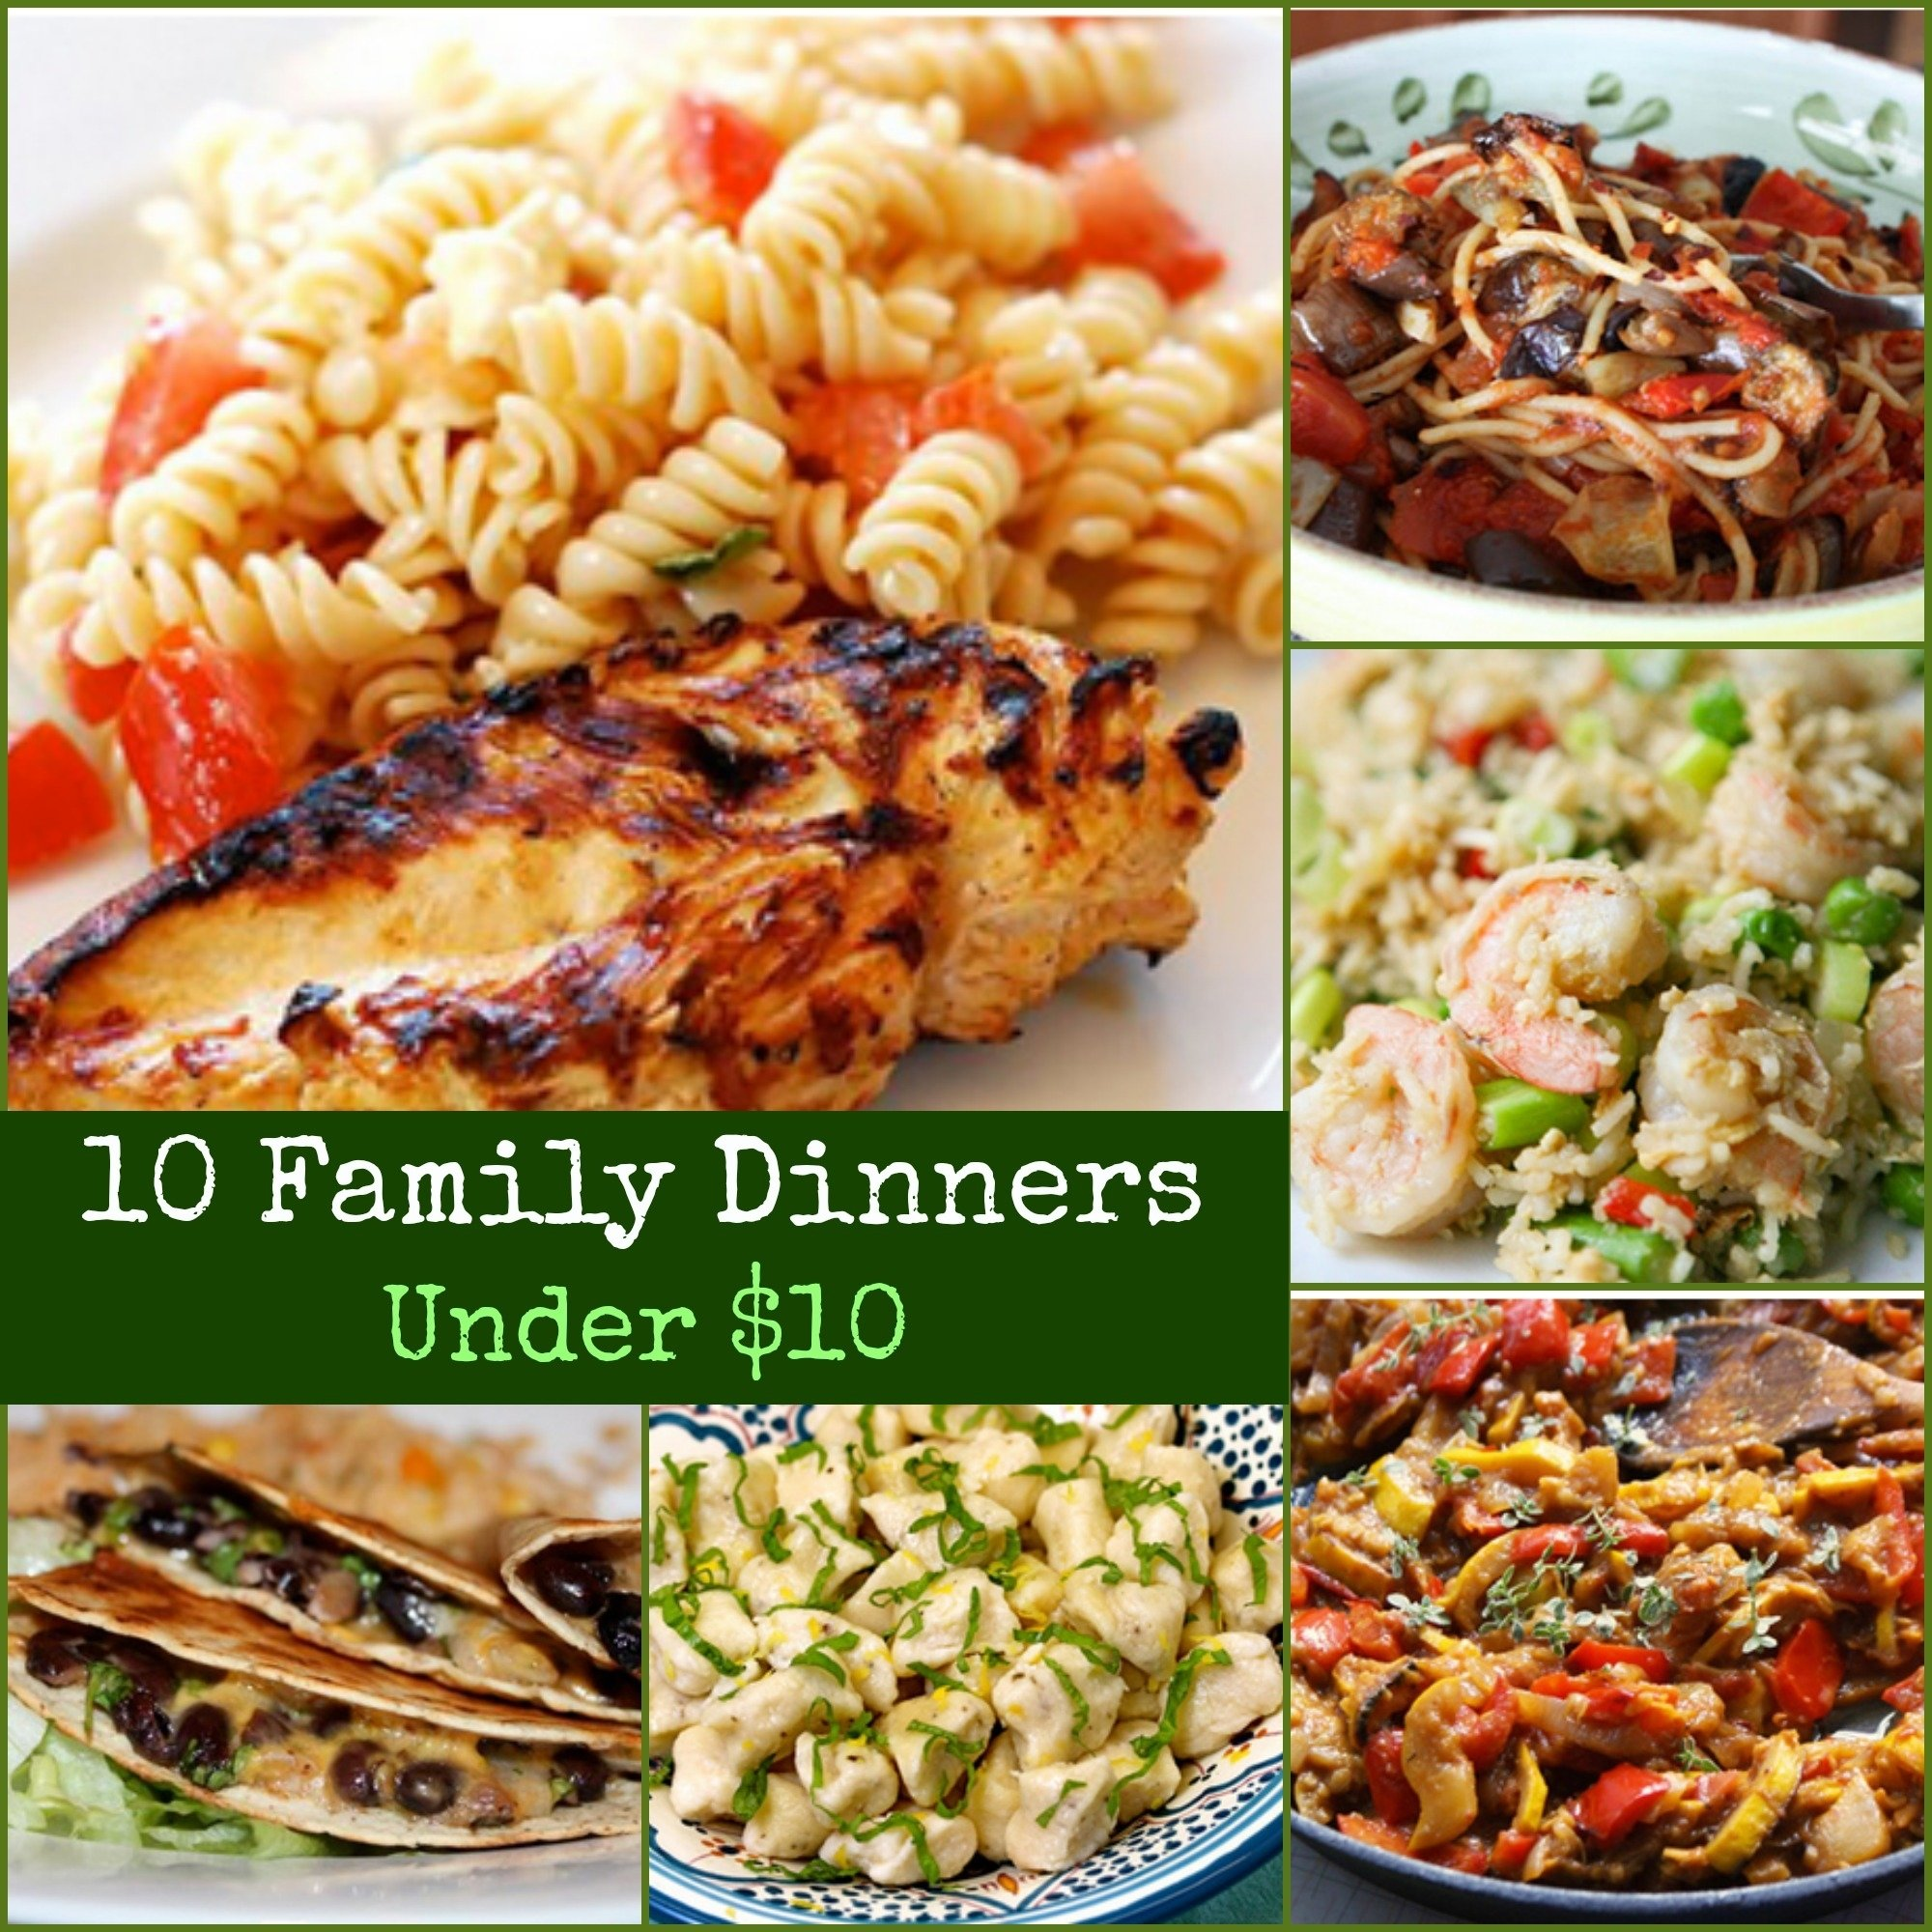 10 Fabulous Dinner Ideas On A Budget download cheap easy quick dinner recipes food photos 1 2021